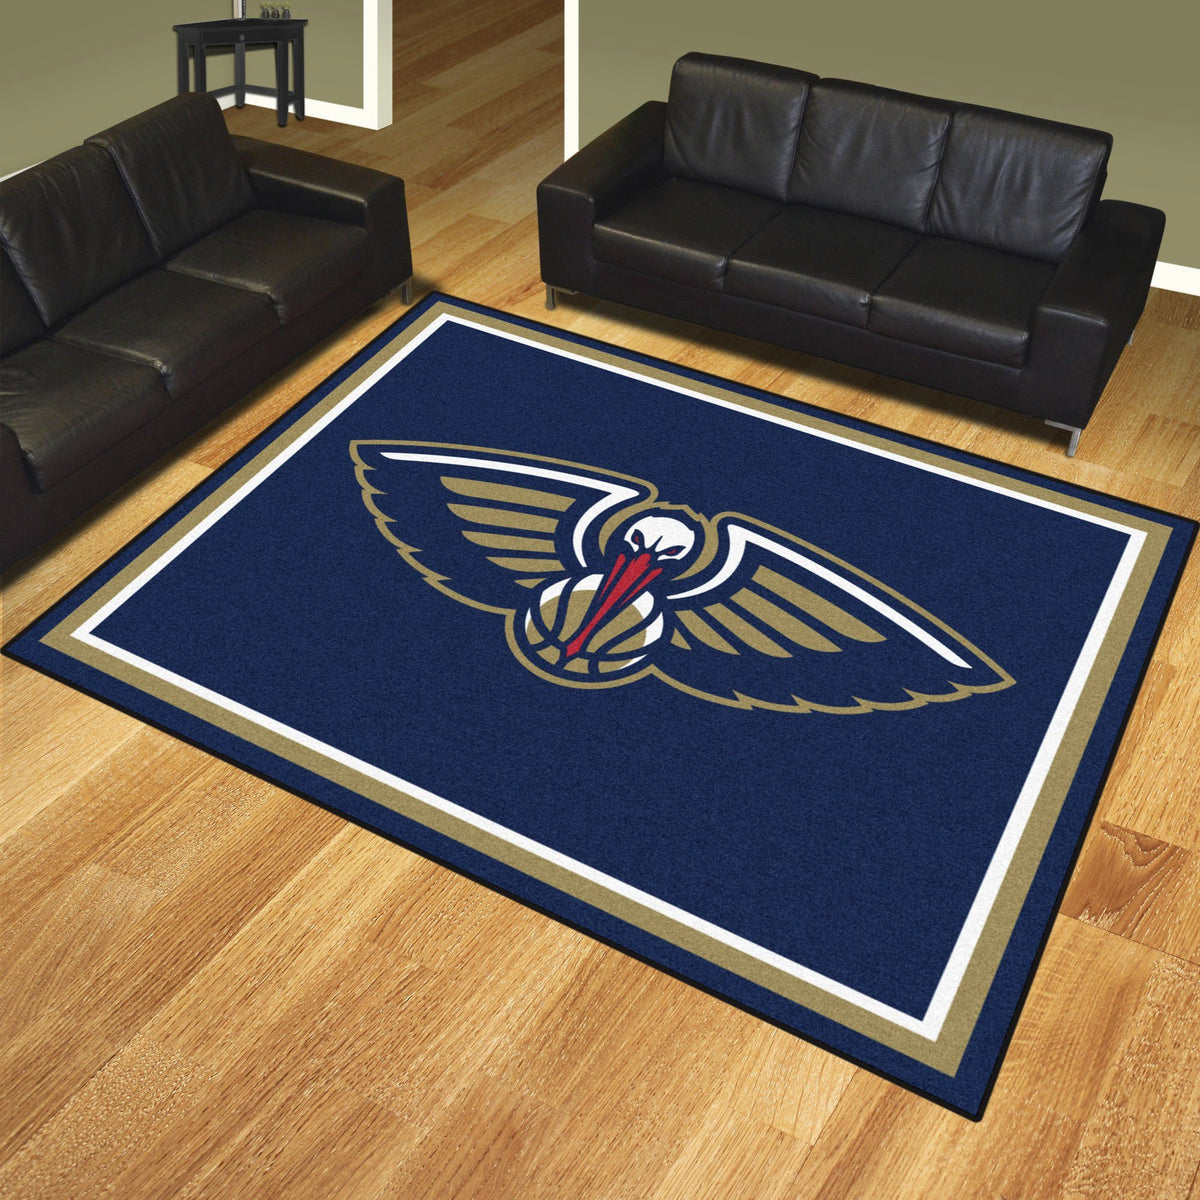 NBA - 8' x 10' Rug NBA Mats, Plush Rugs, 8x10 Rug, NBA, Home Fan Mats New Orleans Pelicans